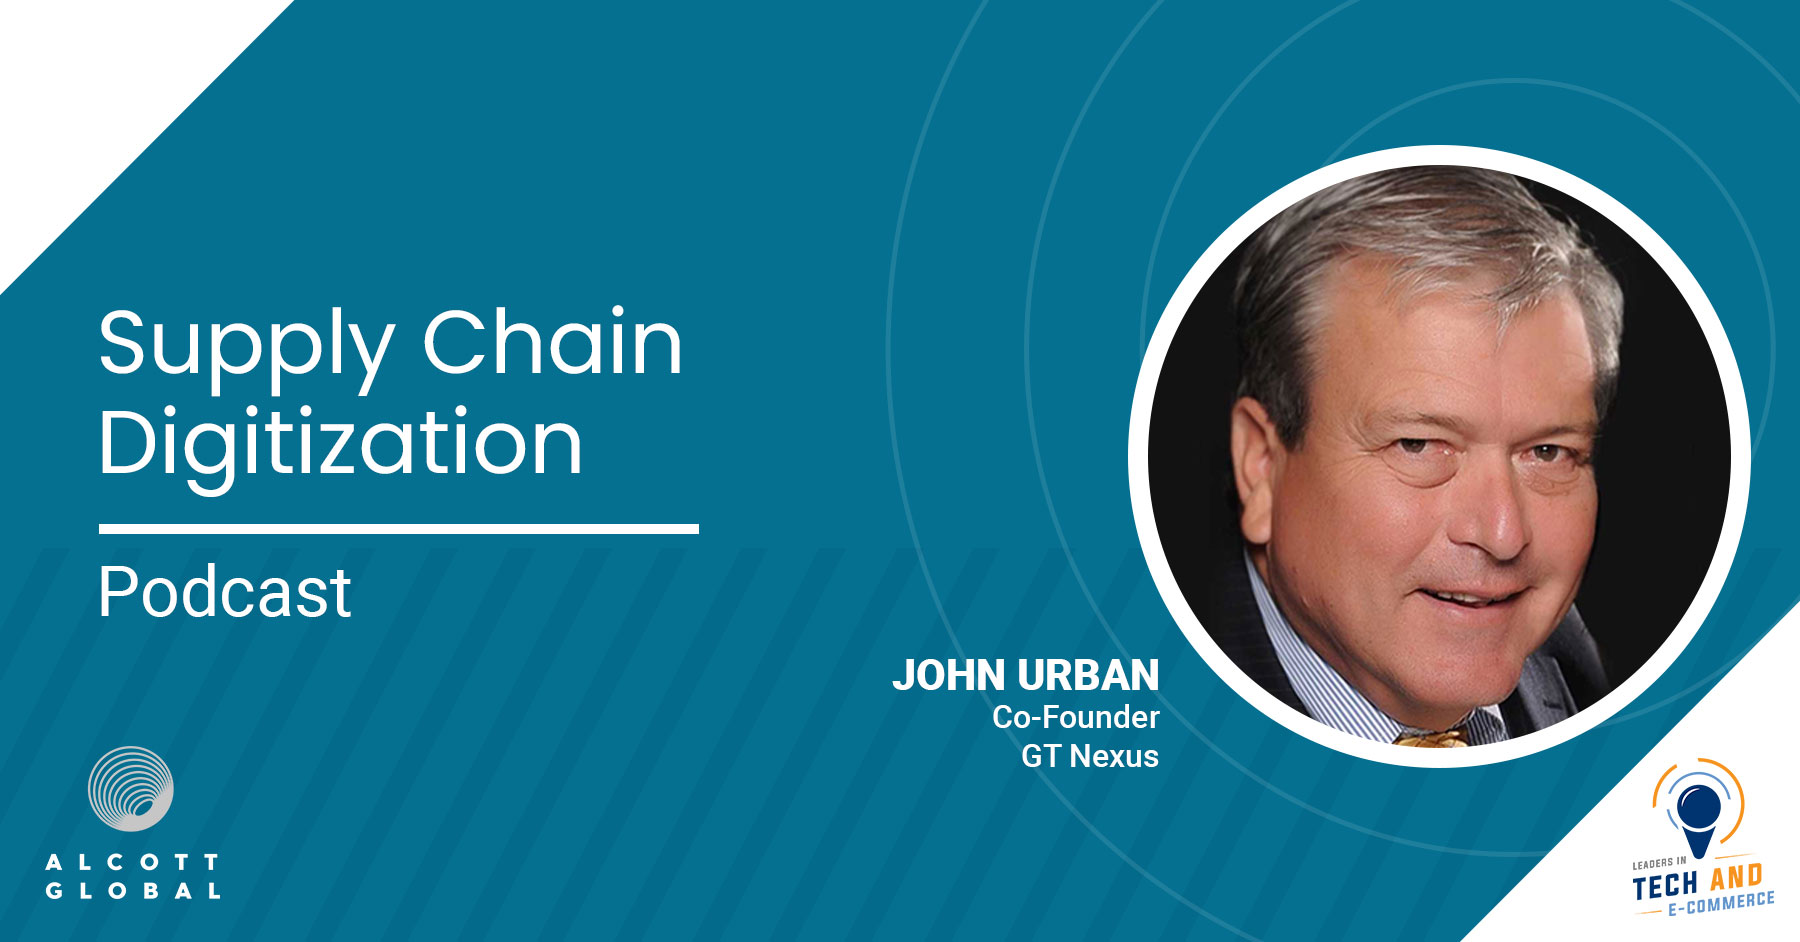 Supply Chain Digitization with John Urban Co-Founder of GT Nexus Featured Image